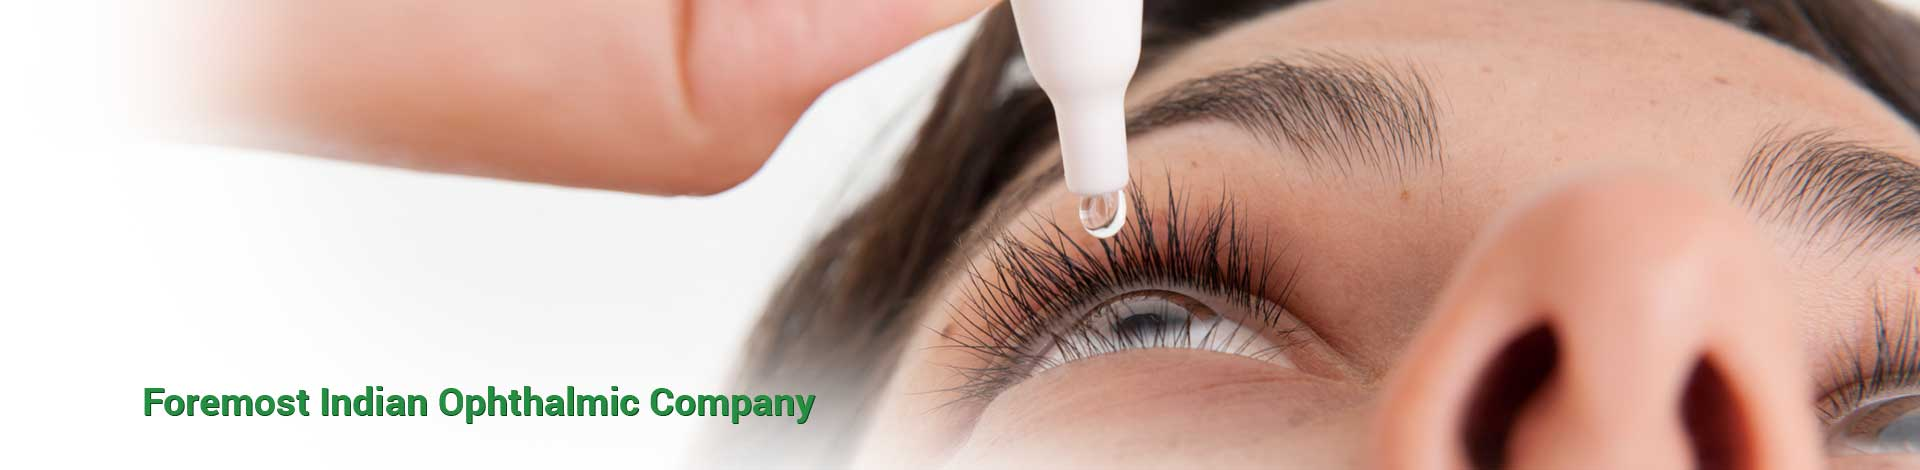 Foremost Indian Ophthalmic Company